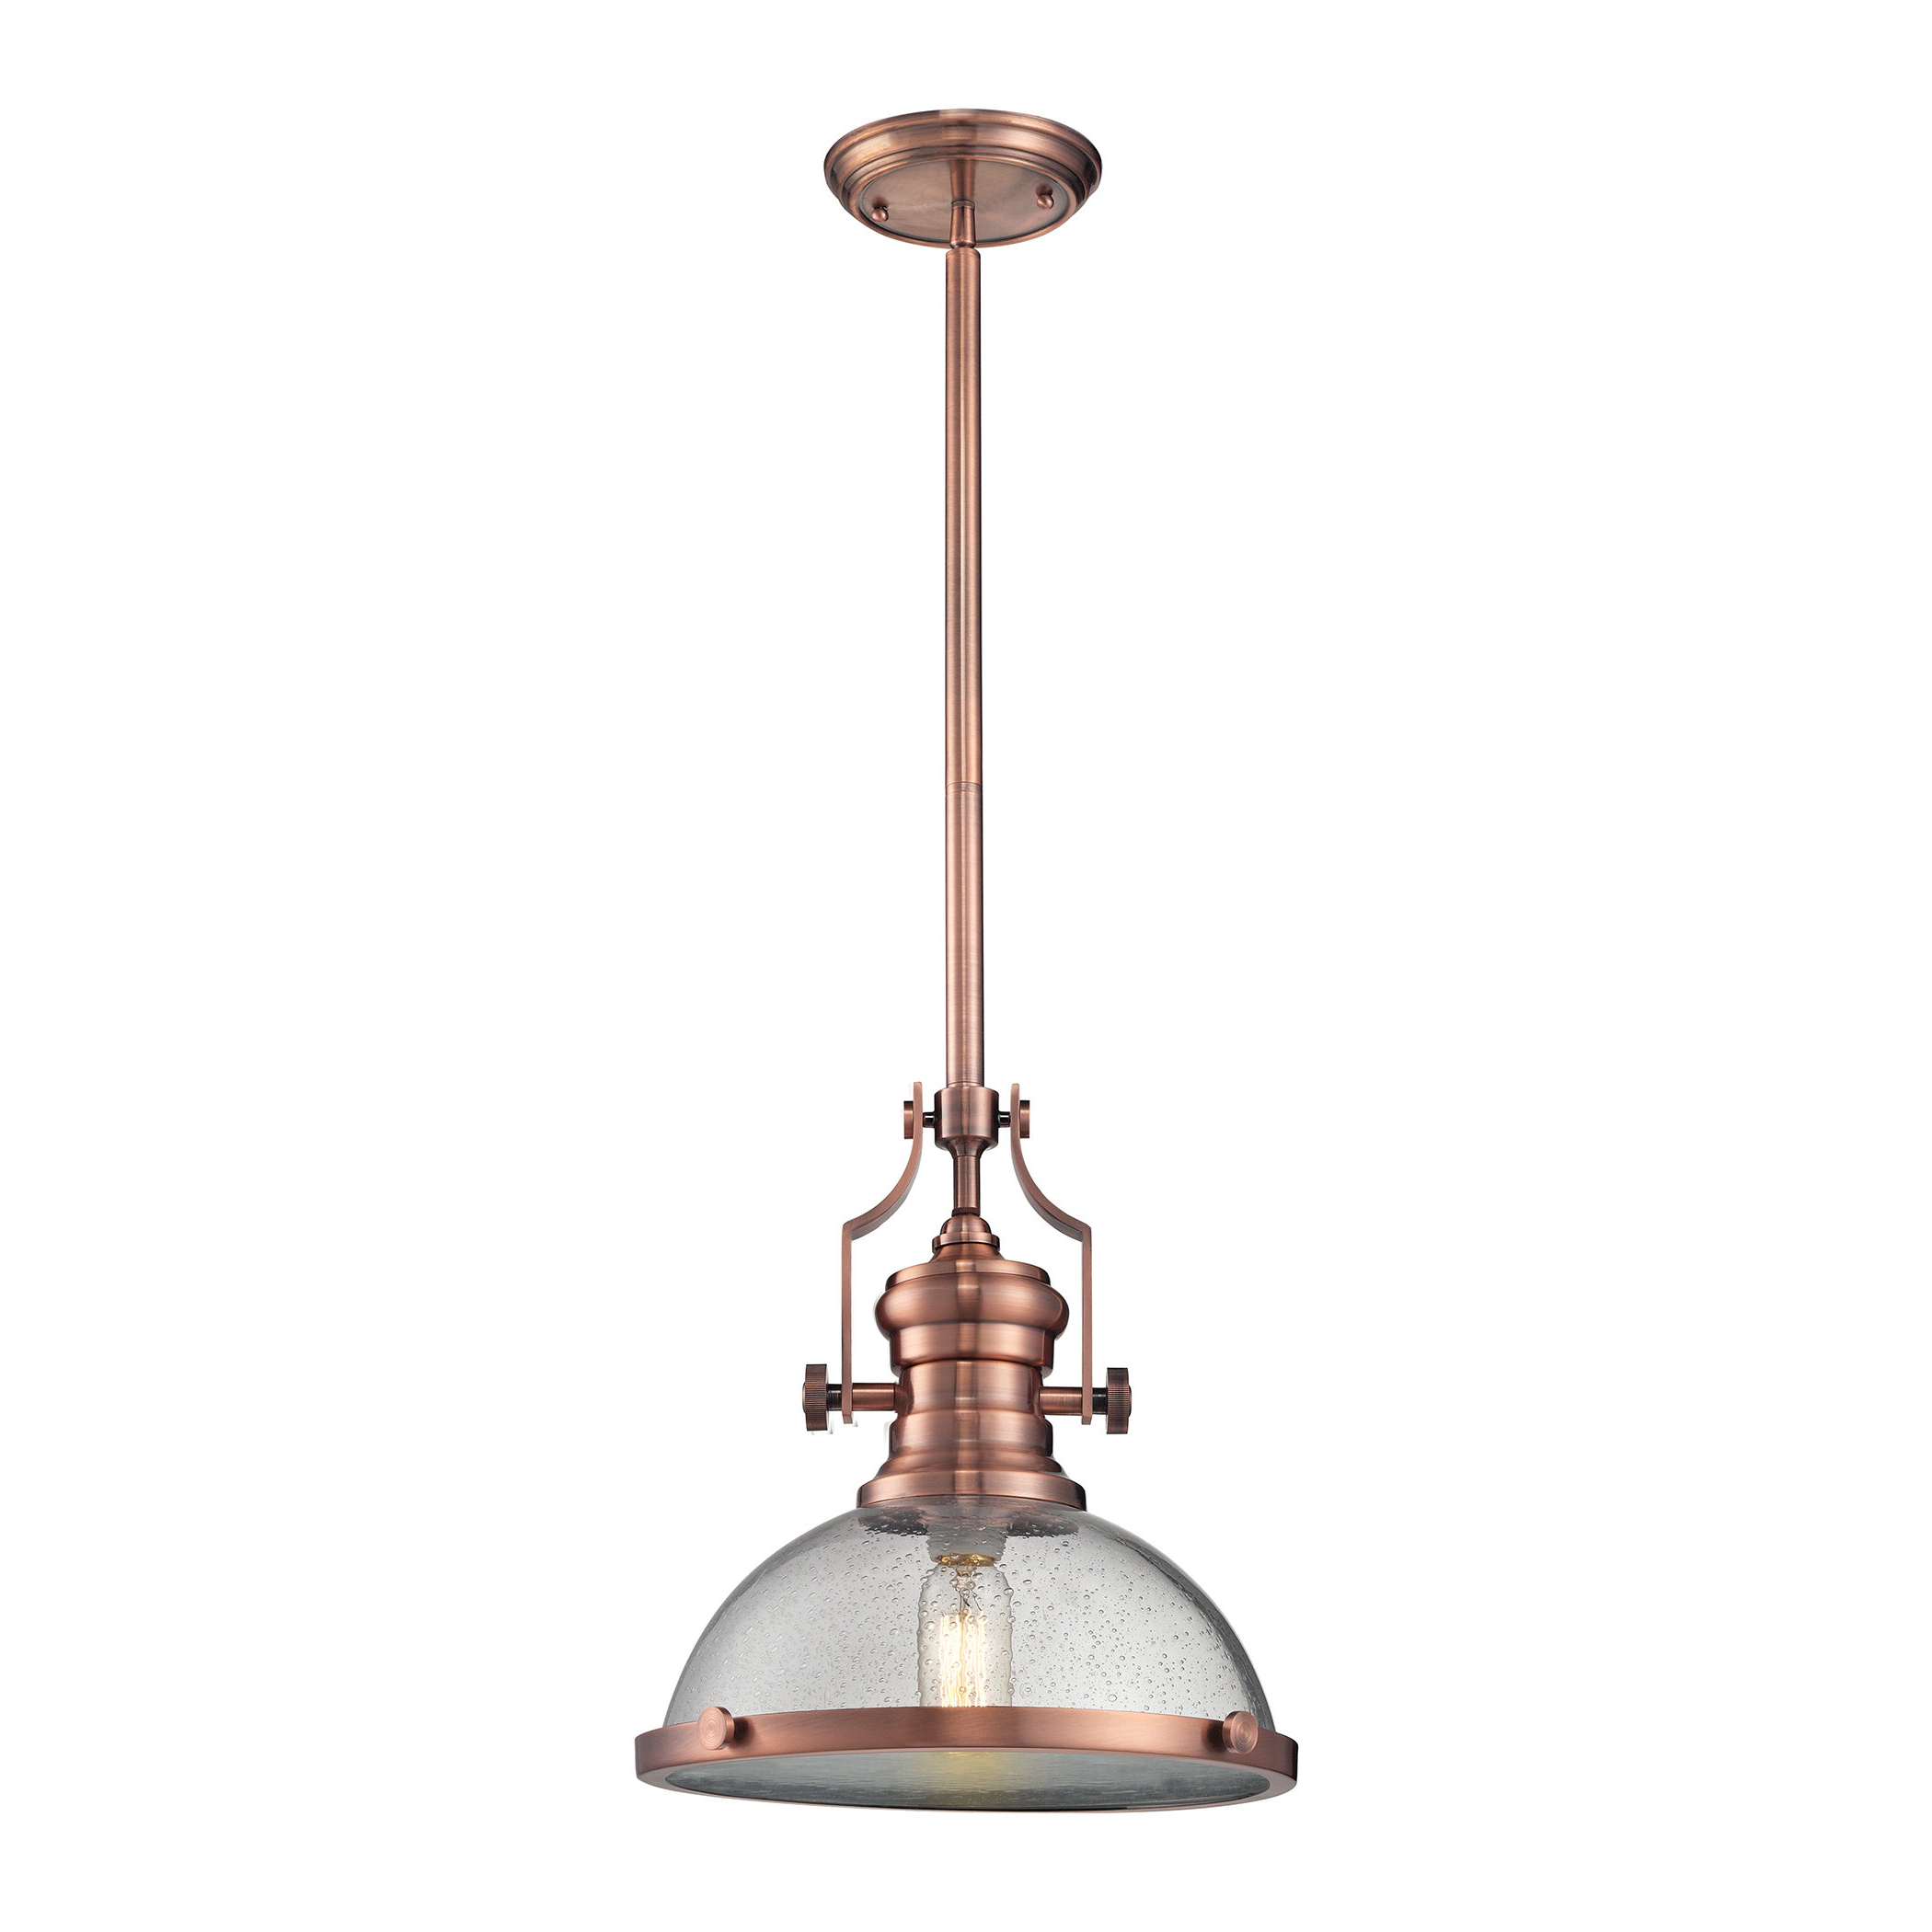 Most Recent Priston 1 Light Single Dome Pendant For Priston 1 Light Single Dome Pendants (Gallery 1 of 20)